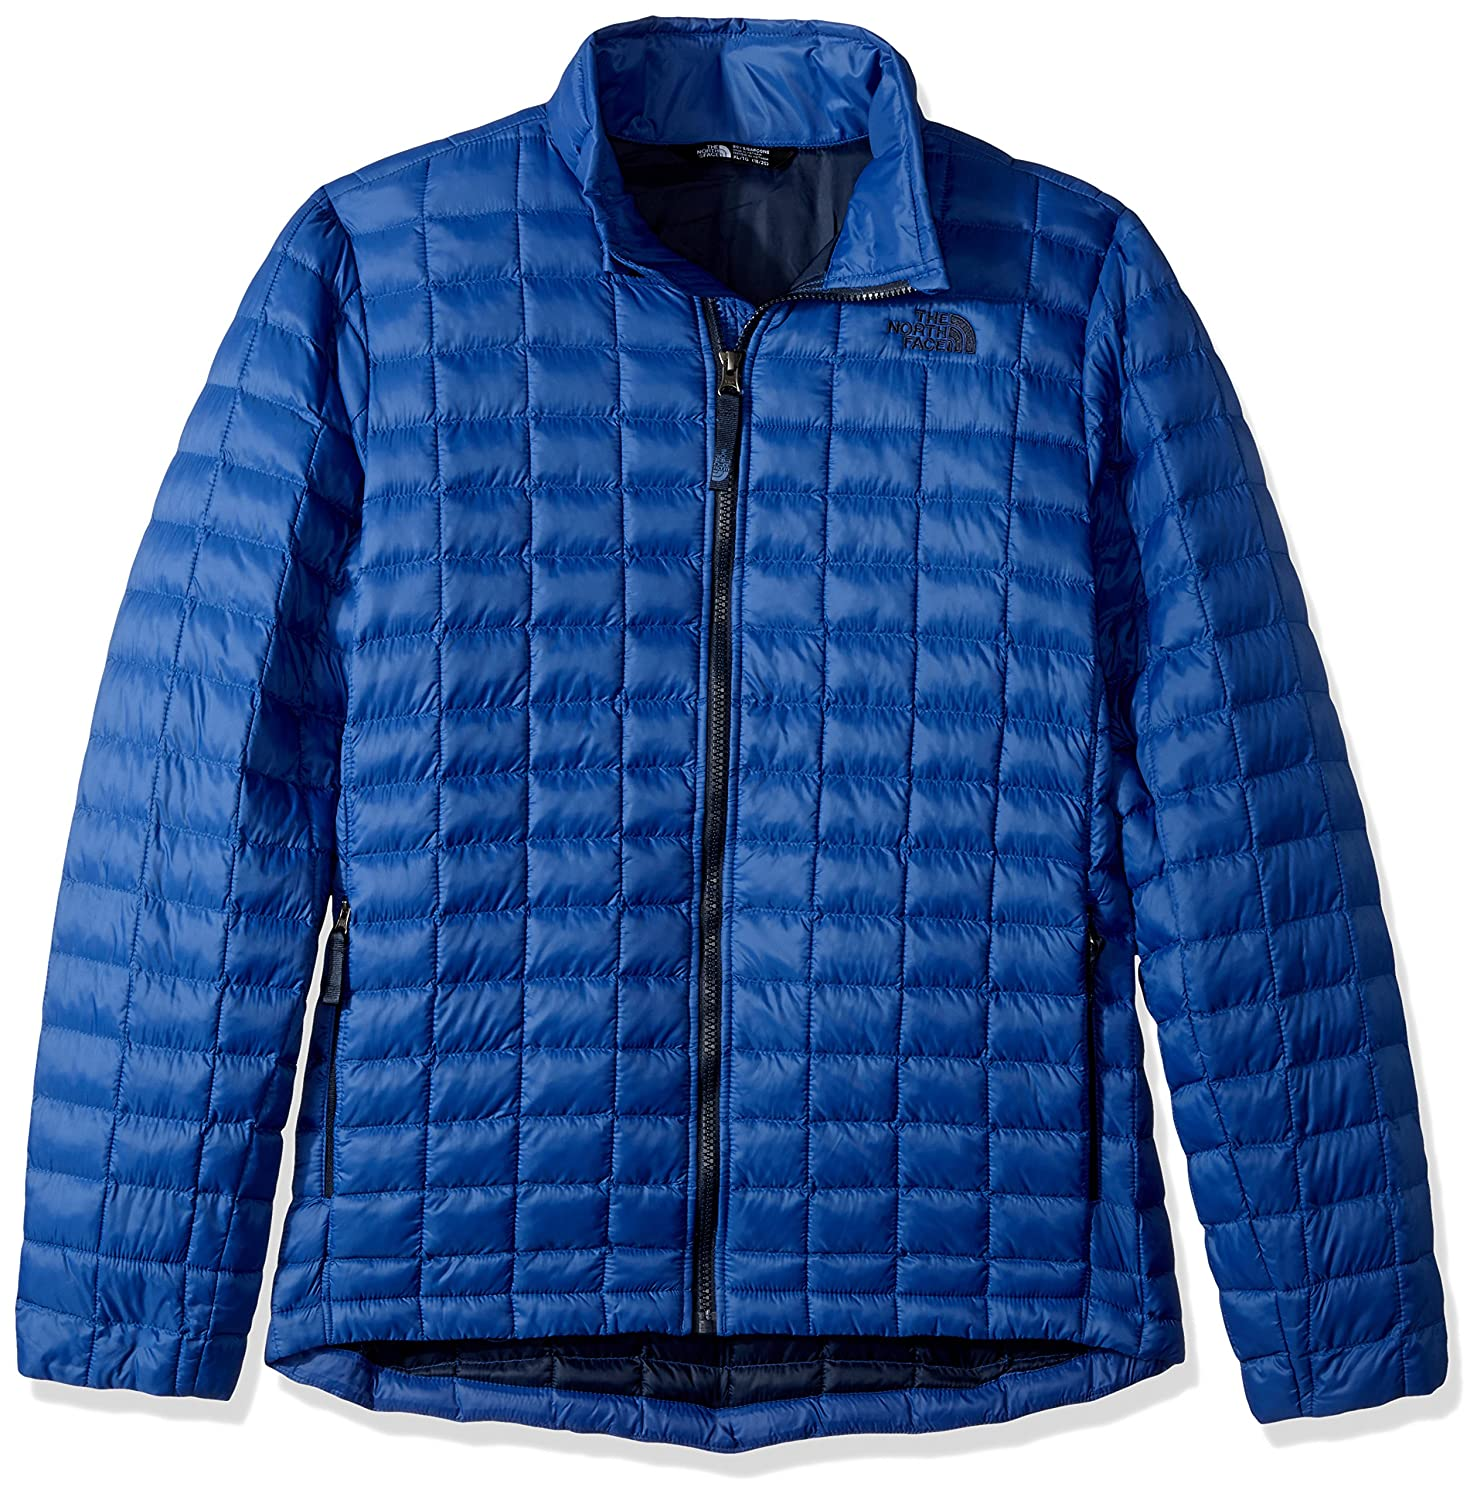 Little Kids//Big Kids The North Face Boys Thermoball Full Zip Jacket